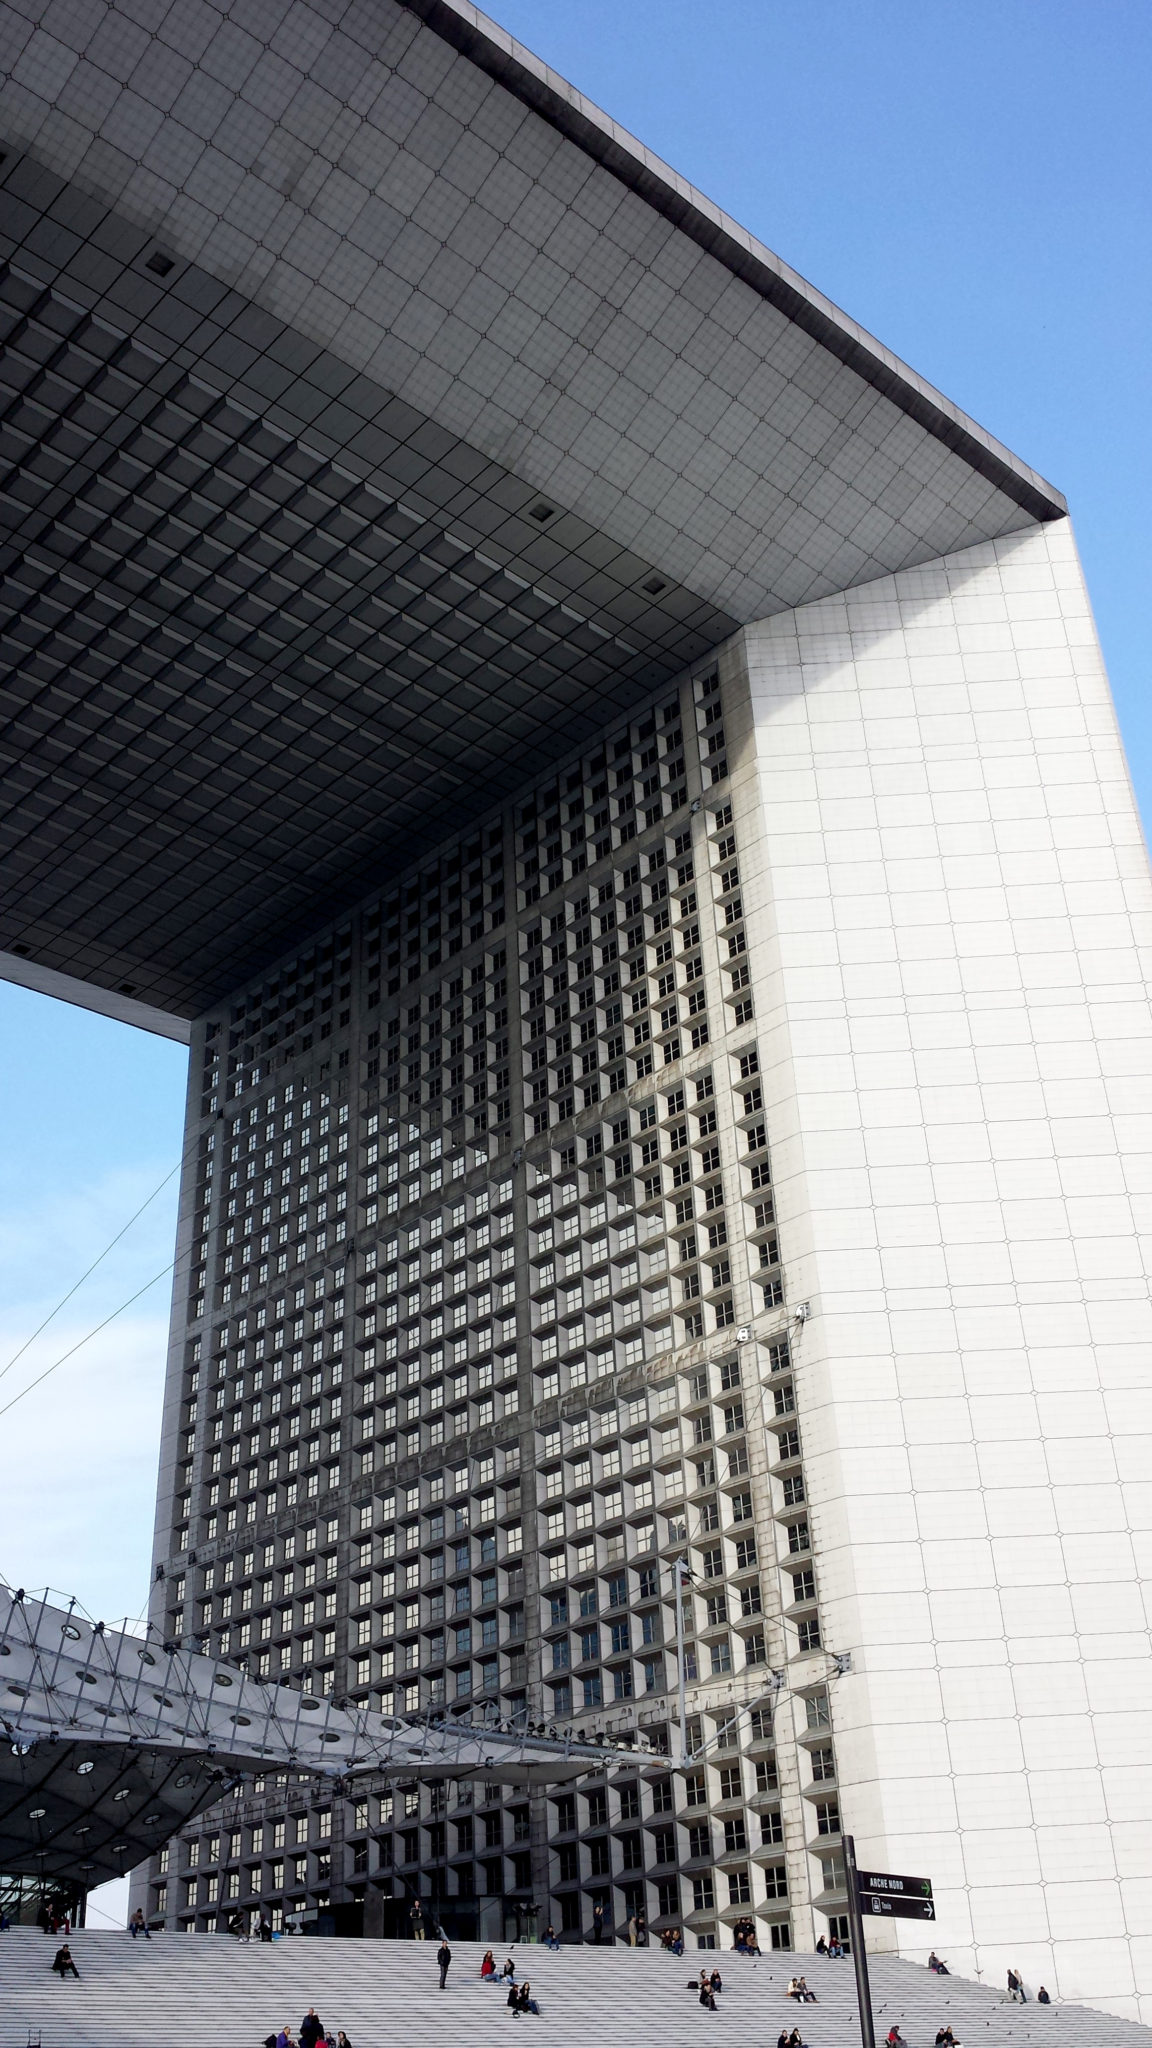 Hema_Paris_La_Grande_Arche_La_Defense